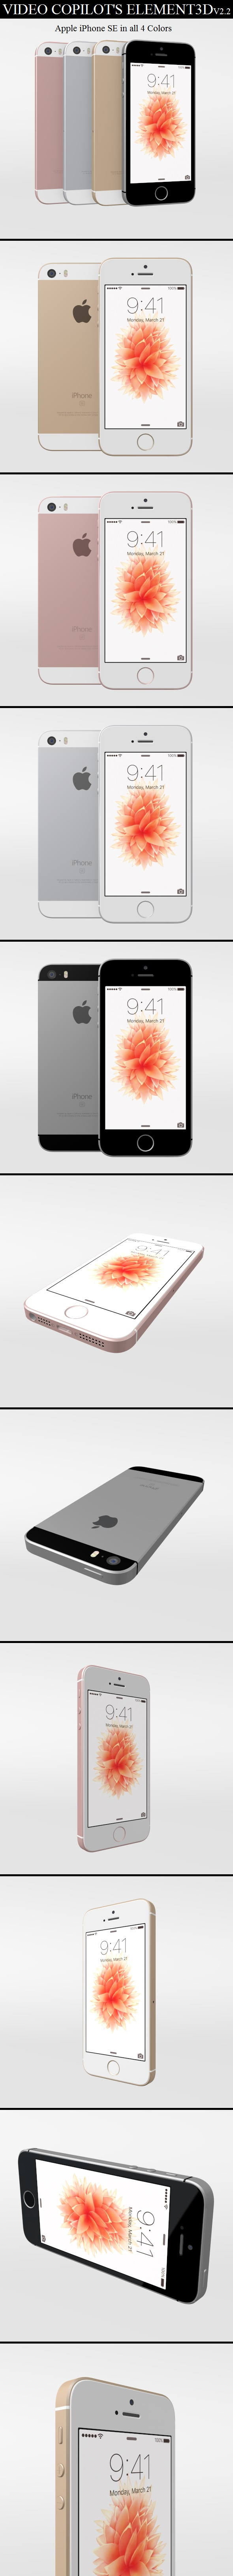 Element3D - iPhone SE - 3DOcean Item for Sale